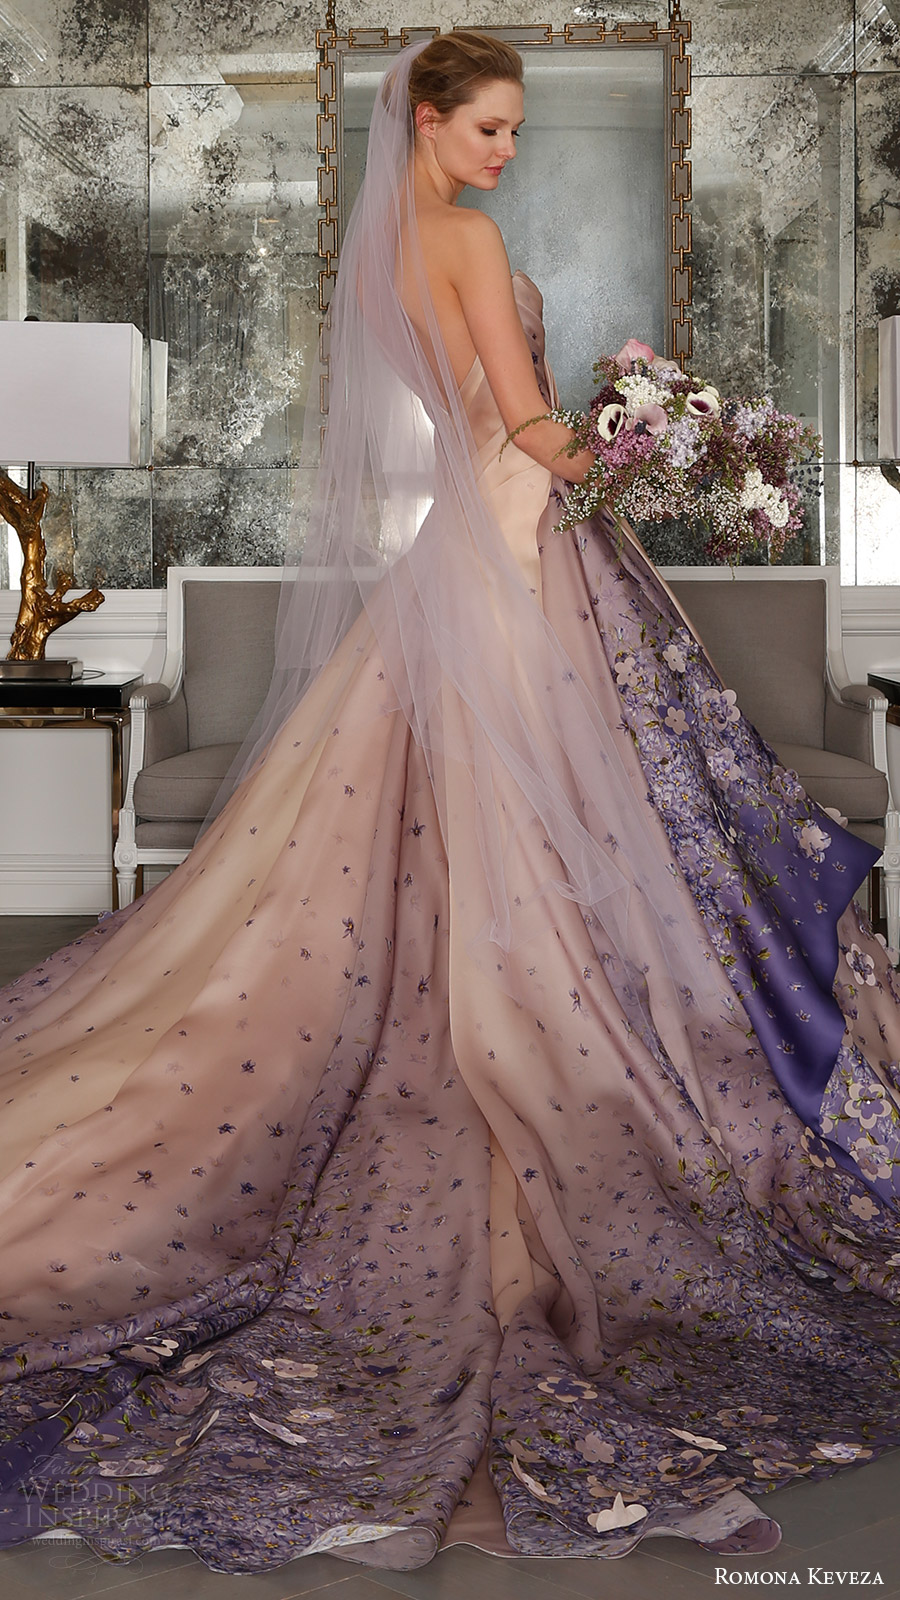 Ball Gown Wedding Dresses With Color : Romona keveza spring wedding dresses ode to paris